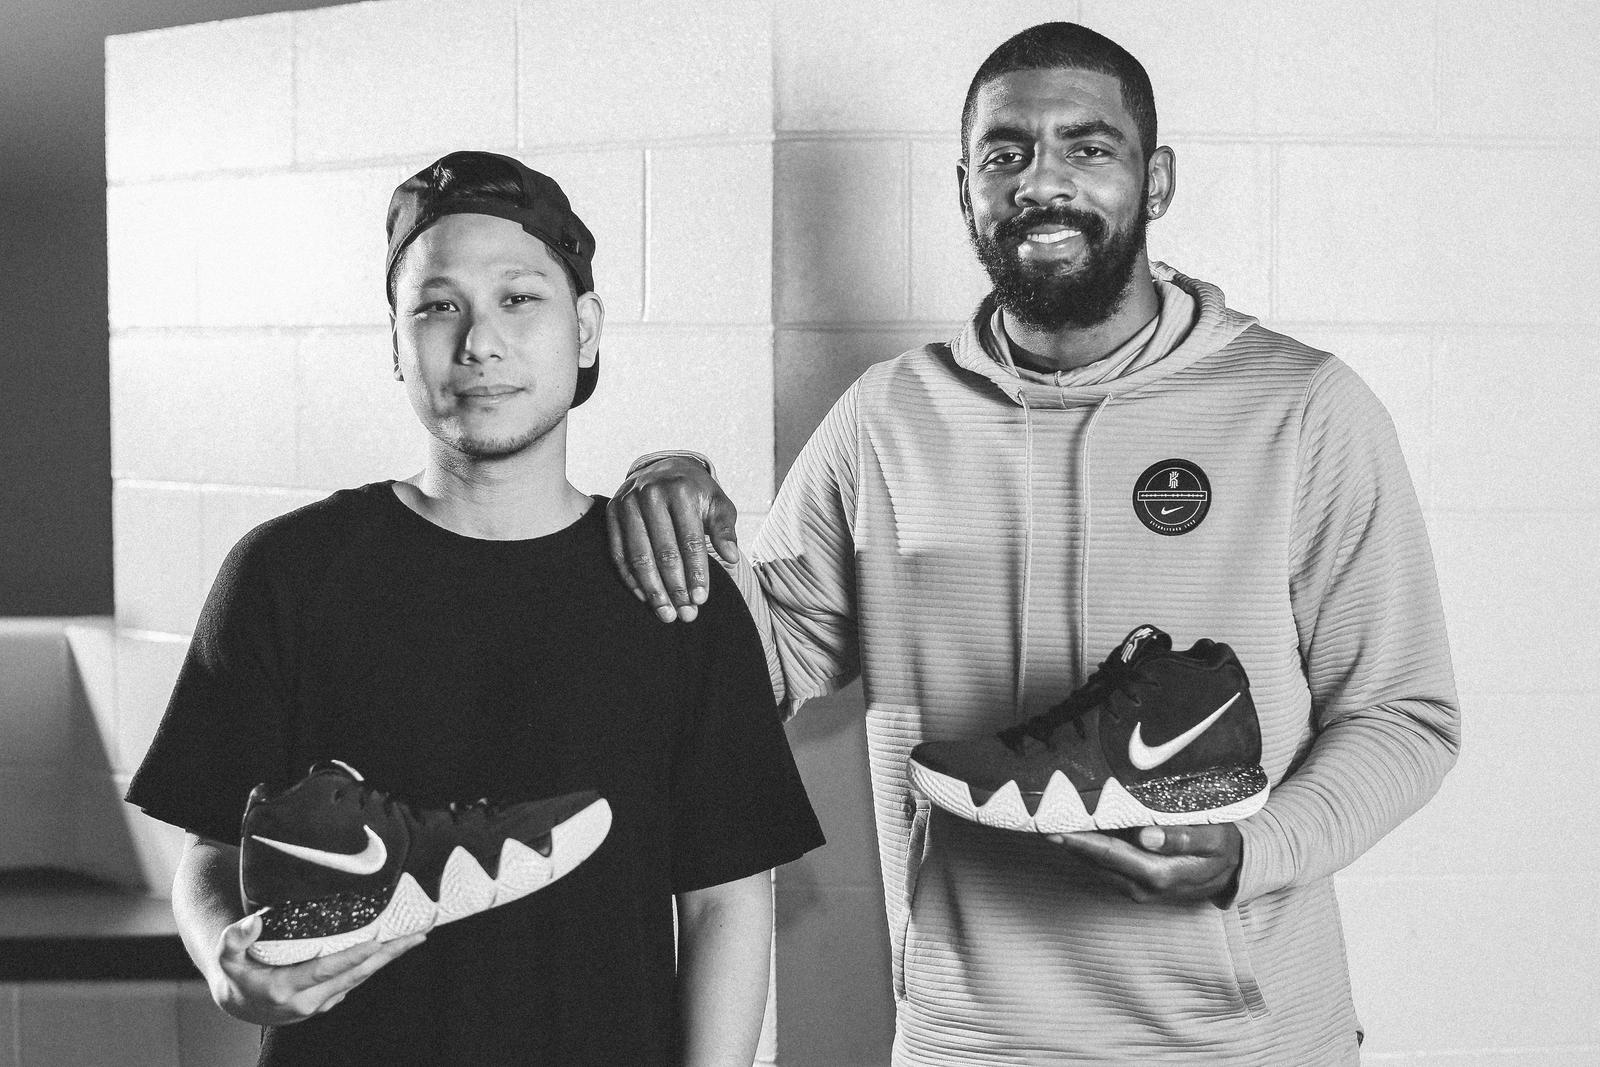 d593bd6e Meet Kyrie Irving's New Design Partner and His Latest Signature Shoe 6